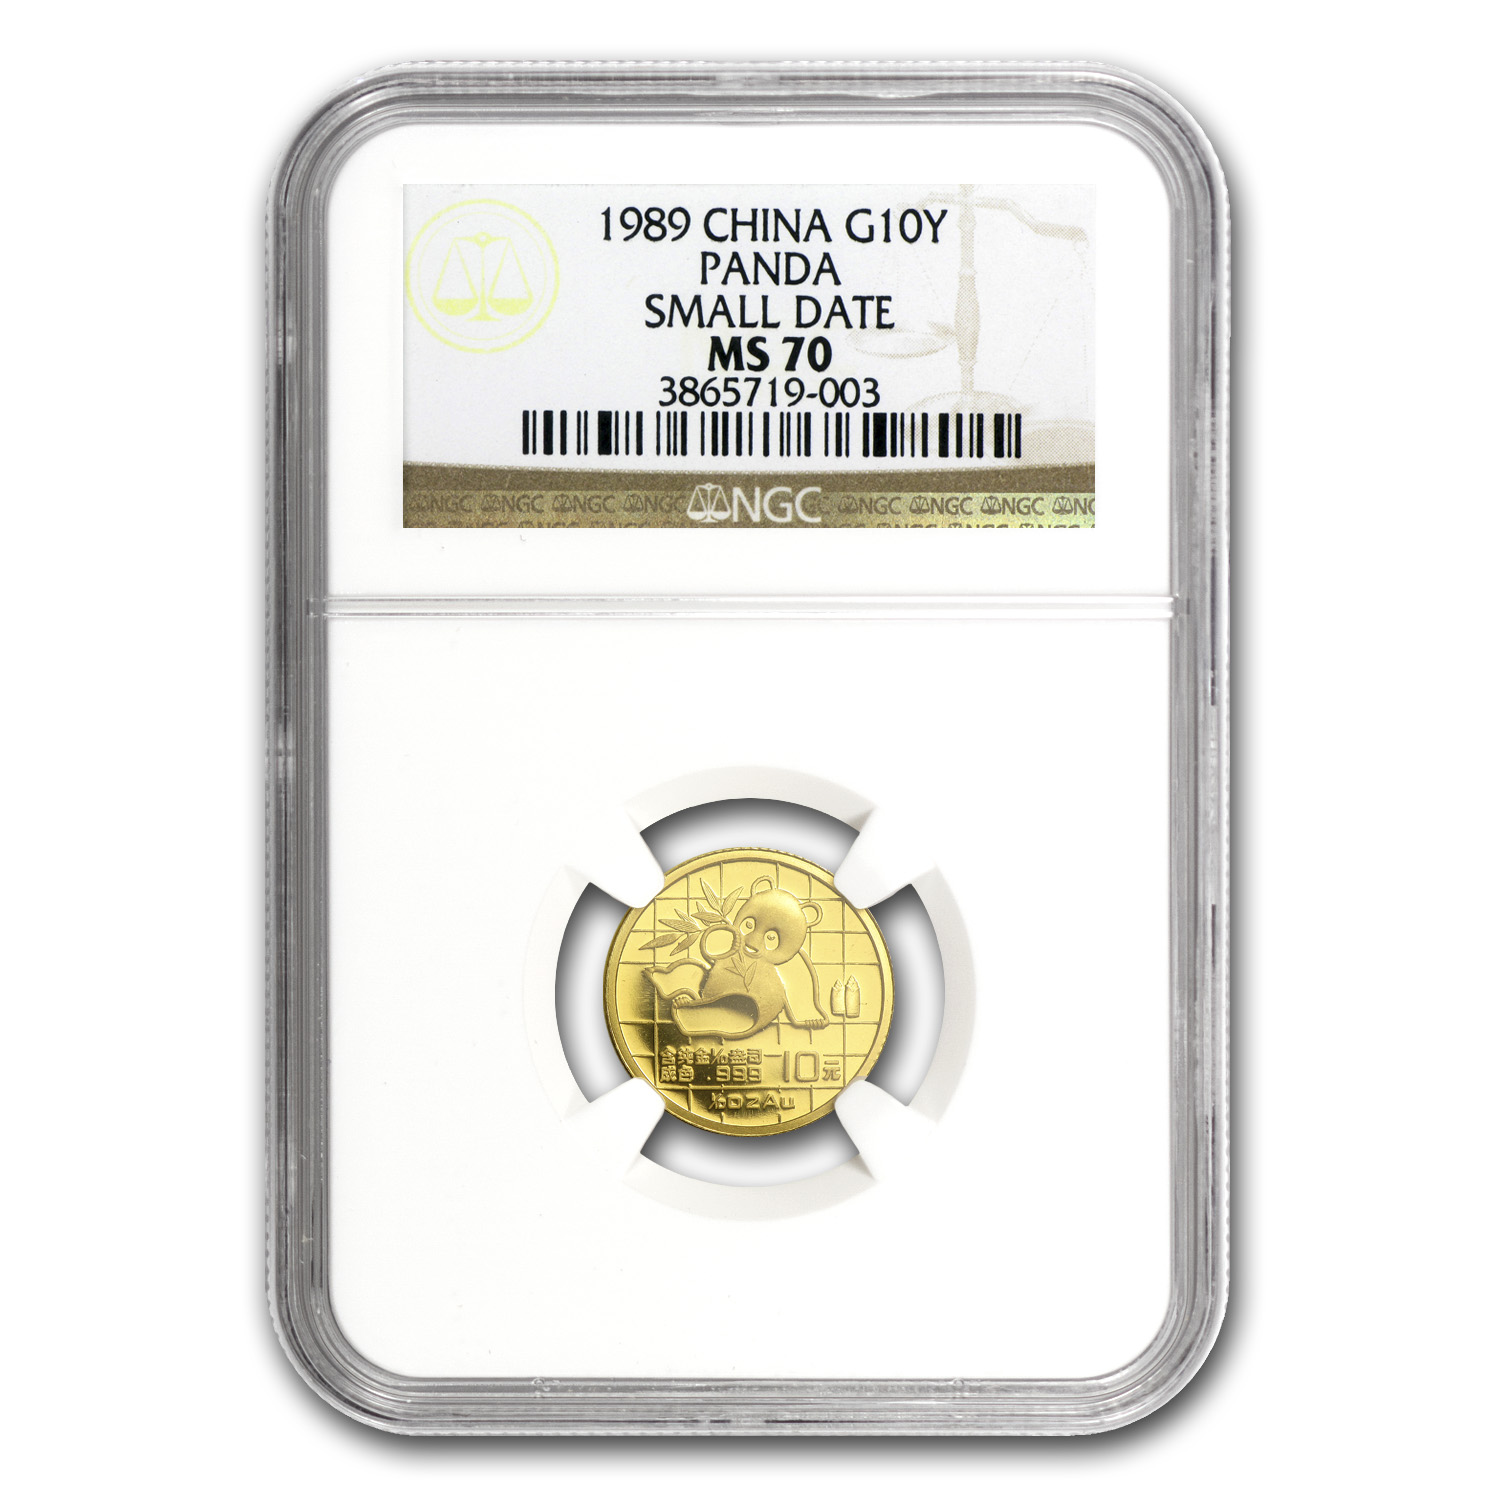 1989 China 1/10 oz Gold Panda Small Date MS-70 NGC